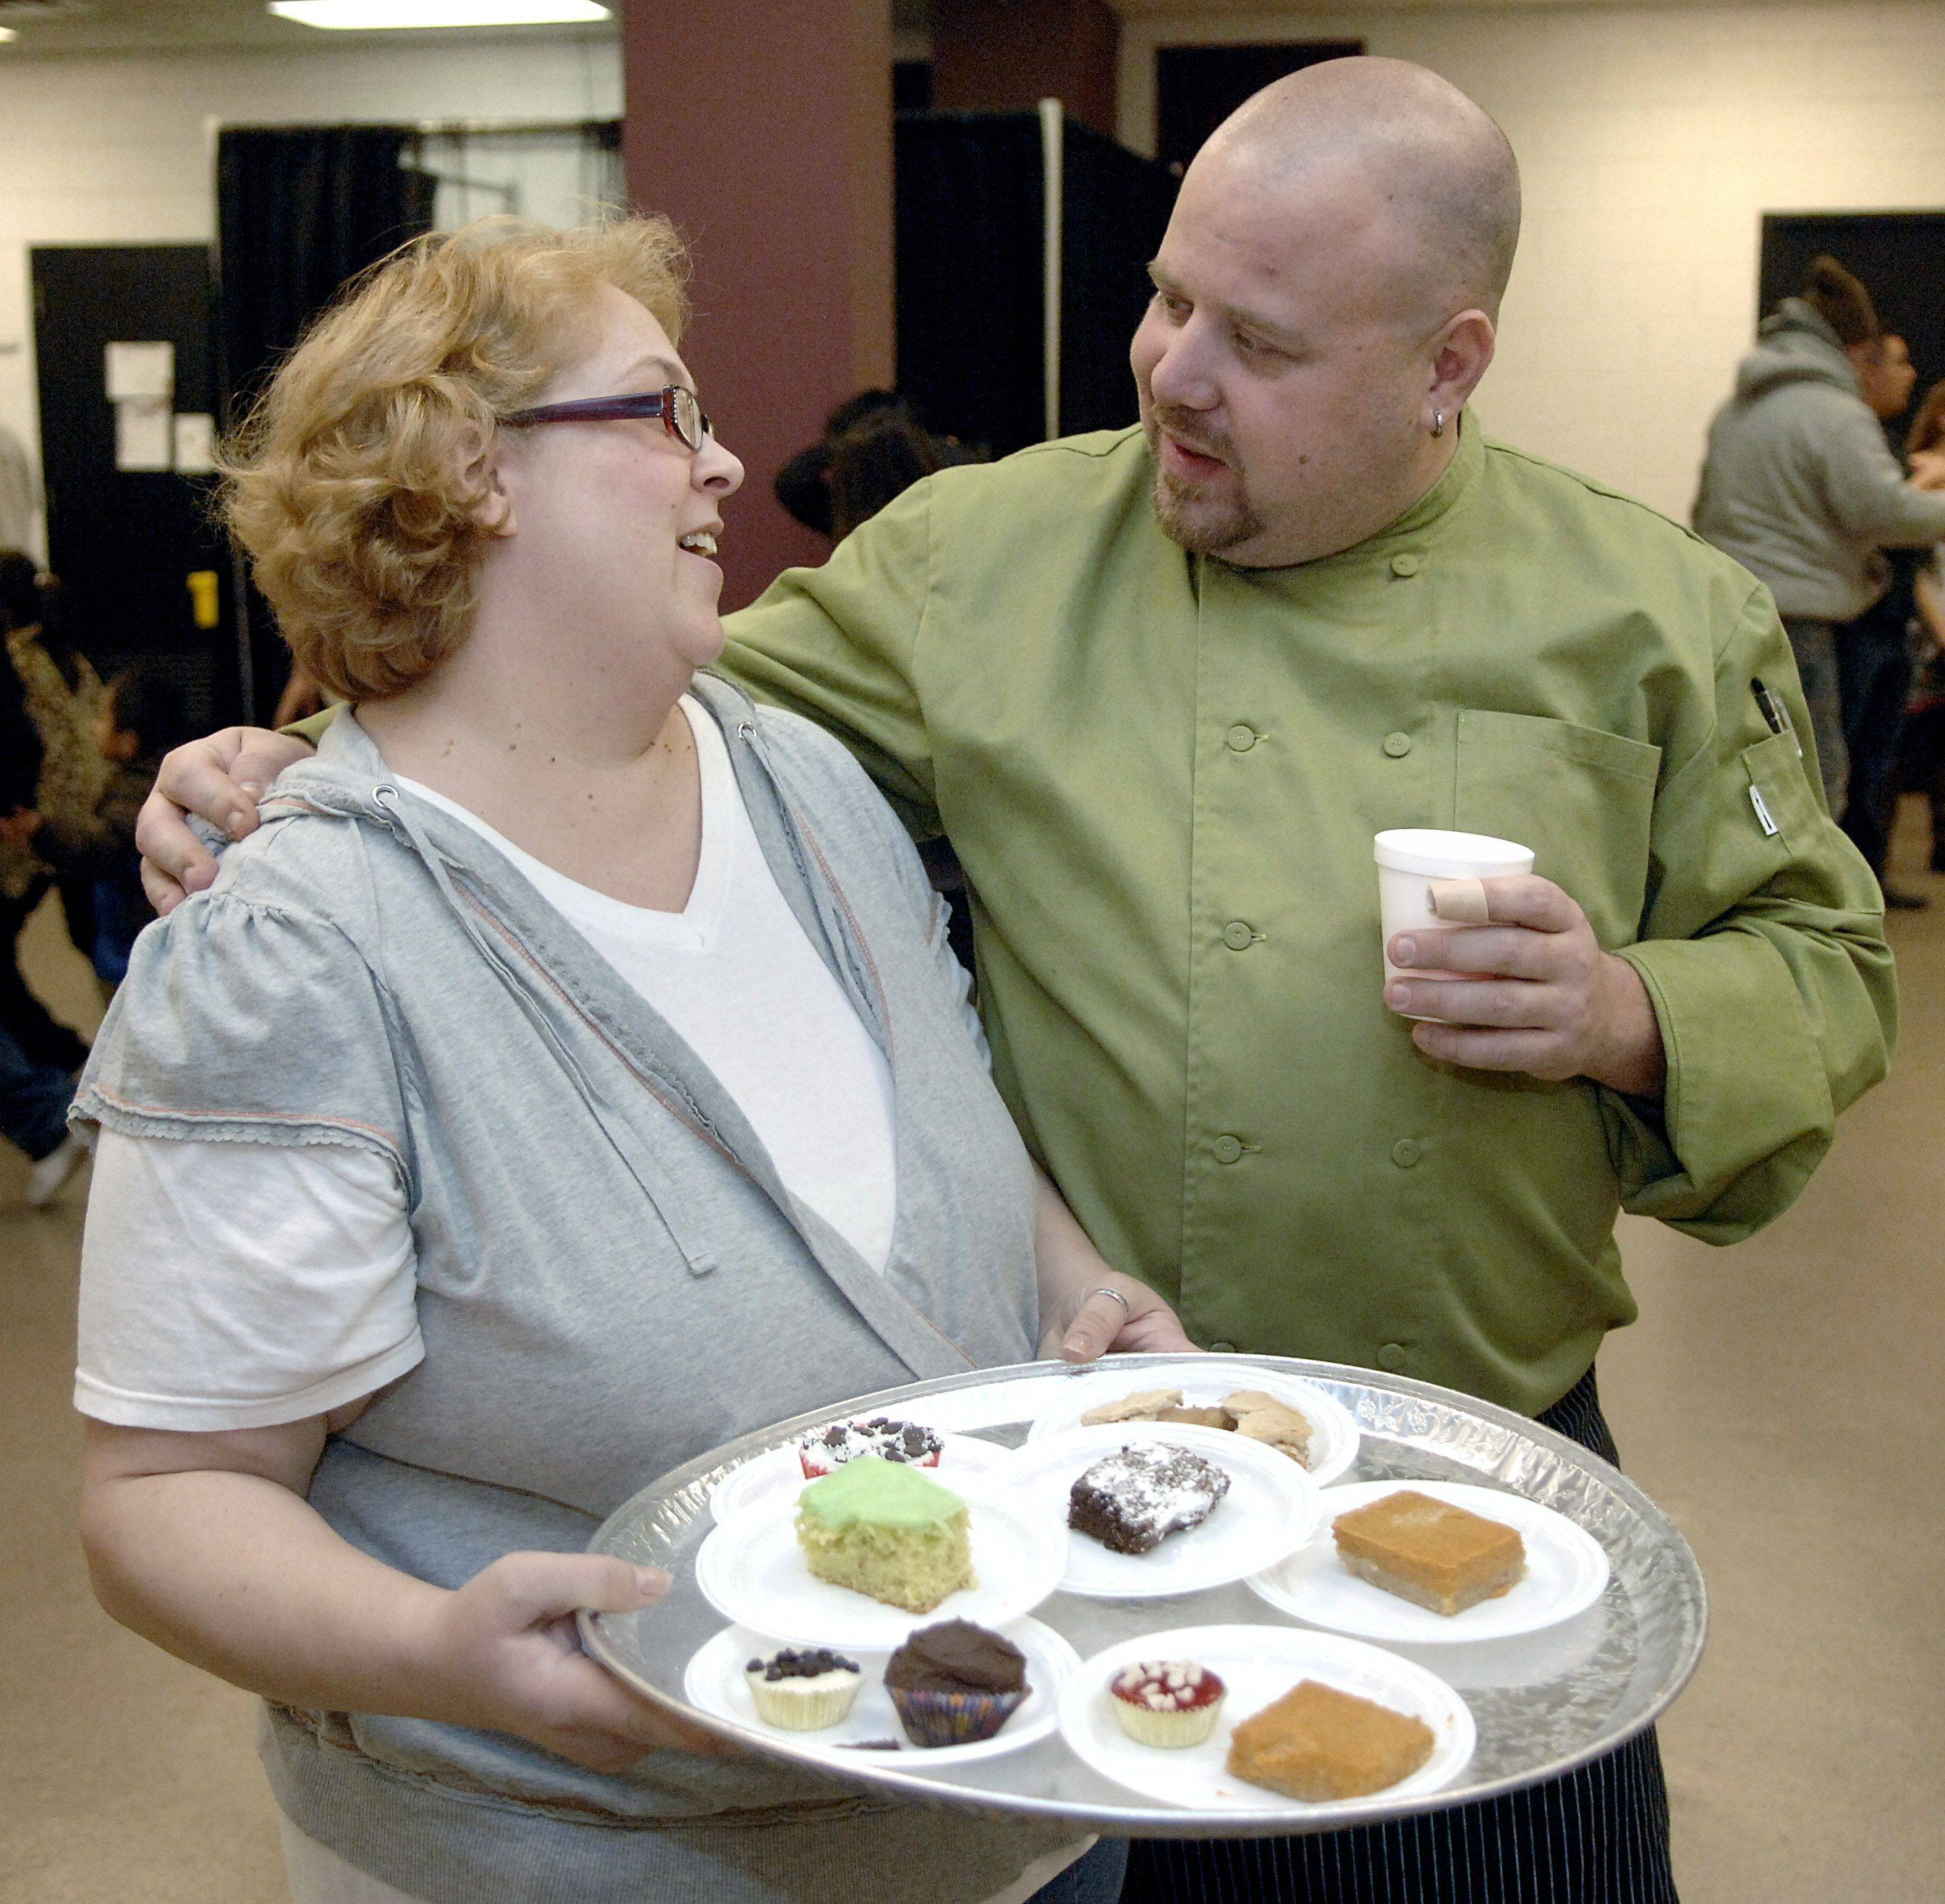 "Volunteer Angela Kibbe of Elgin greets Thanksgiving dinner organizer and chef Jeff Turner of ""In the Neighborhood Deli"" while serving desserts at the Hemmens Cultural Center. Kibbe is a brand new mother after trying for 12 years. She says she was so thankful that when she saw the ad in a newspaper asking for volunteers for the Thanksgiving dinner, she knew it was what she wanted to do this year."